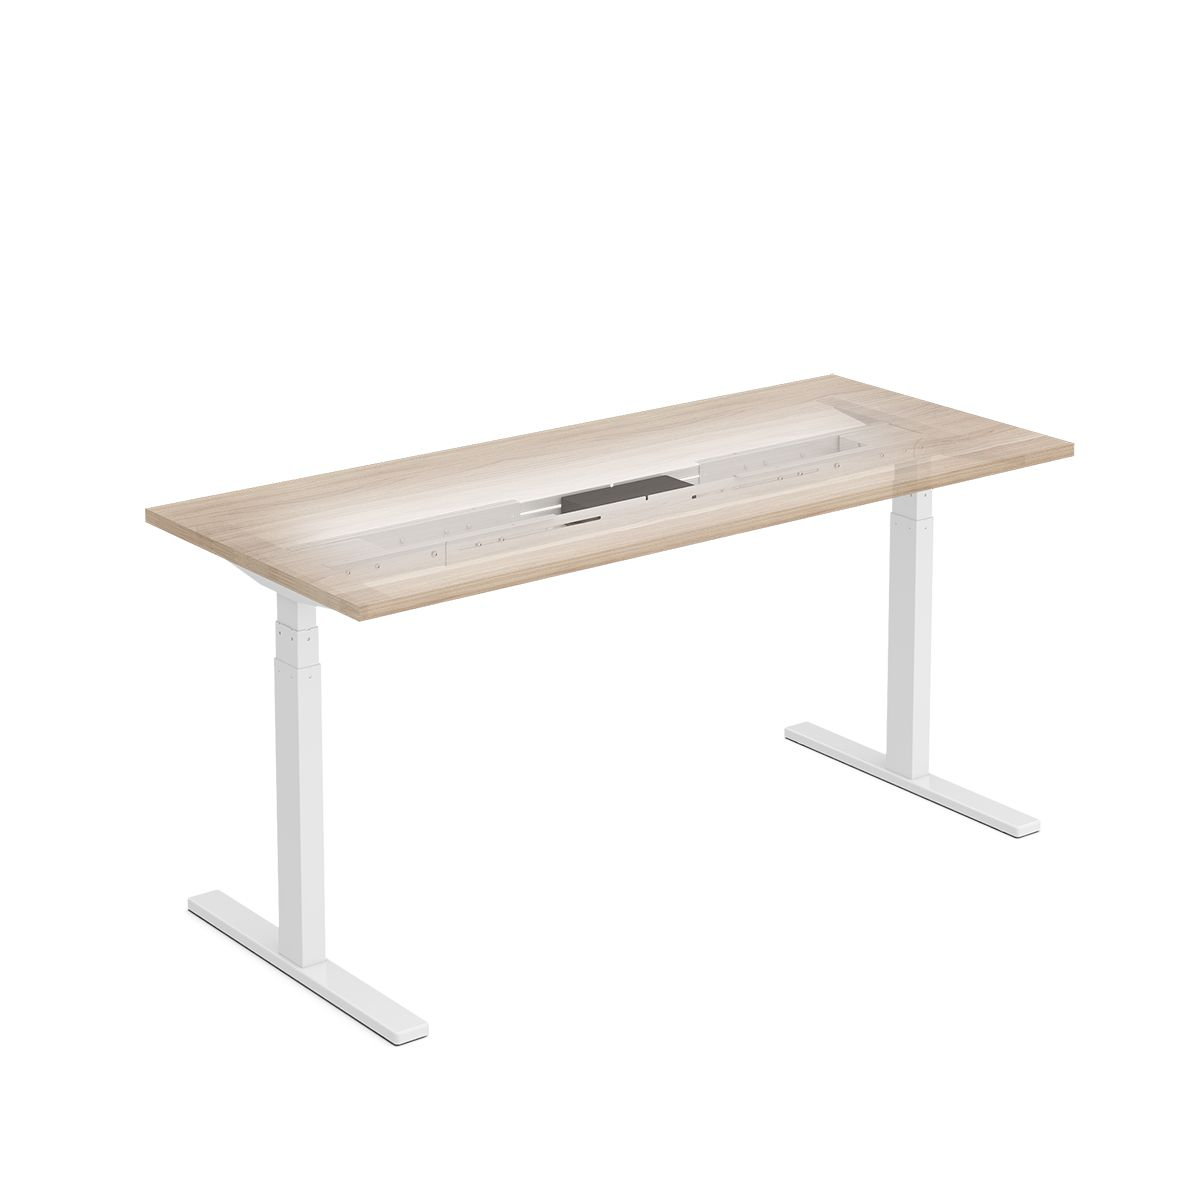 Pengcheng Office Furniture: PCES-1250 Electric Height